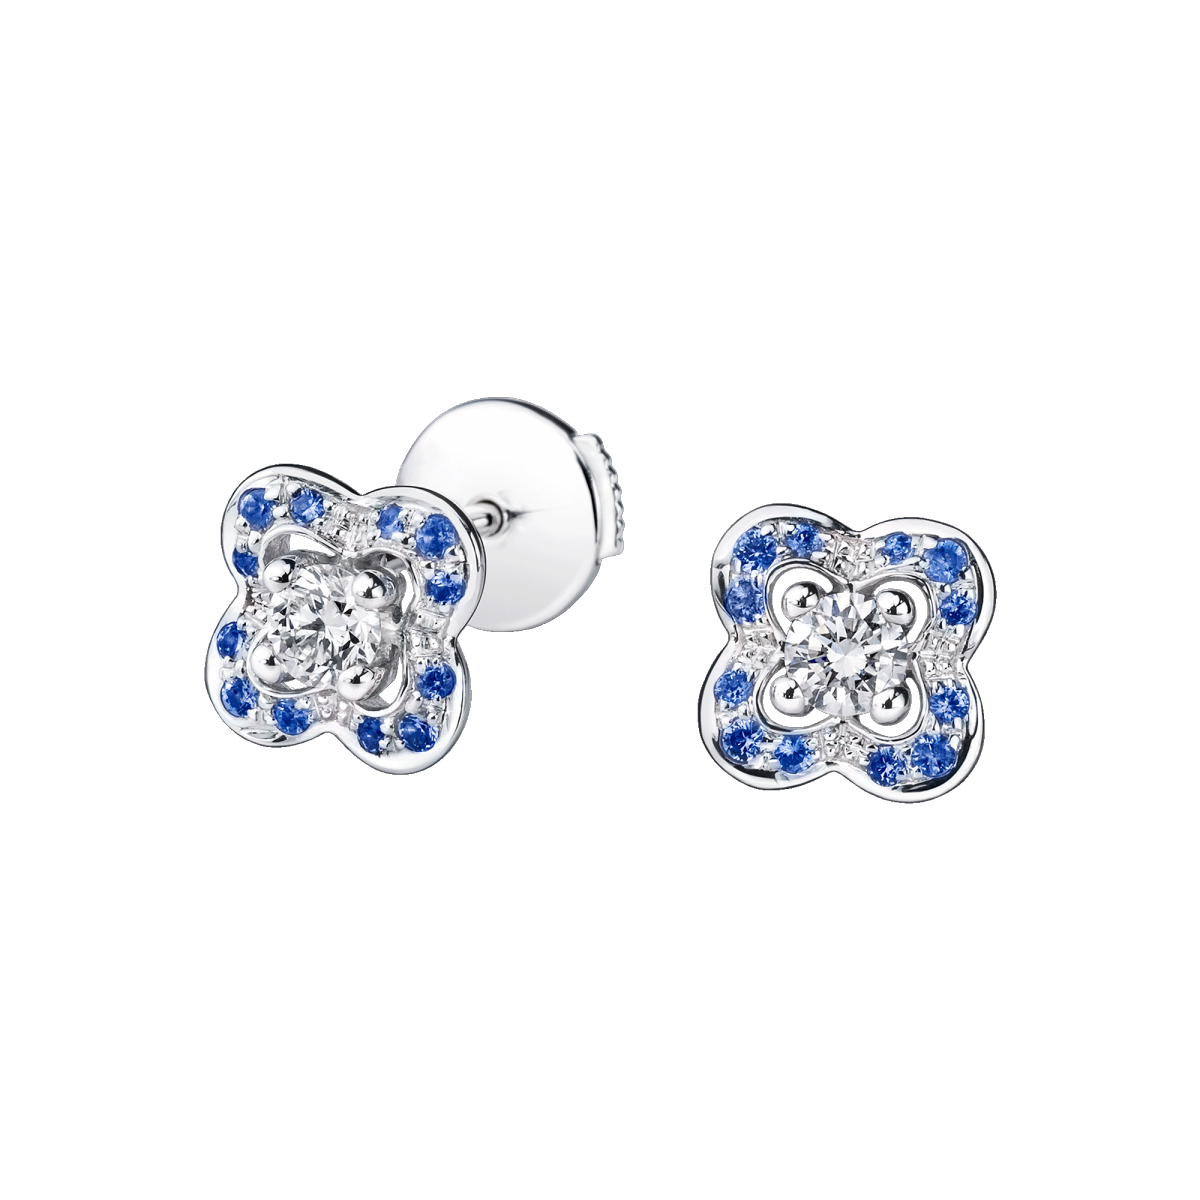 Chance's Cup earrings, white gold, diamonds and sapphires